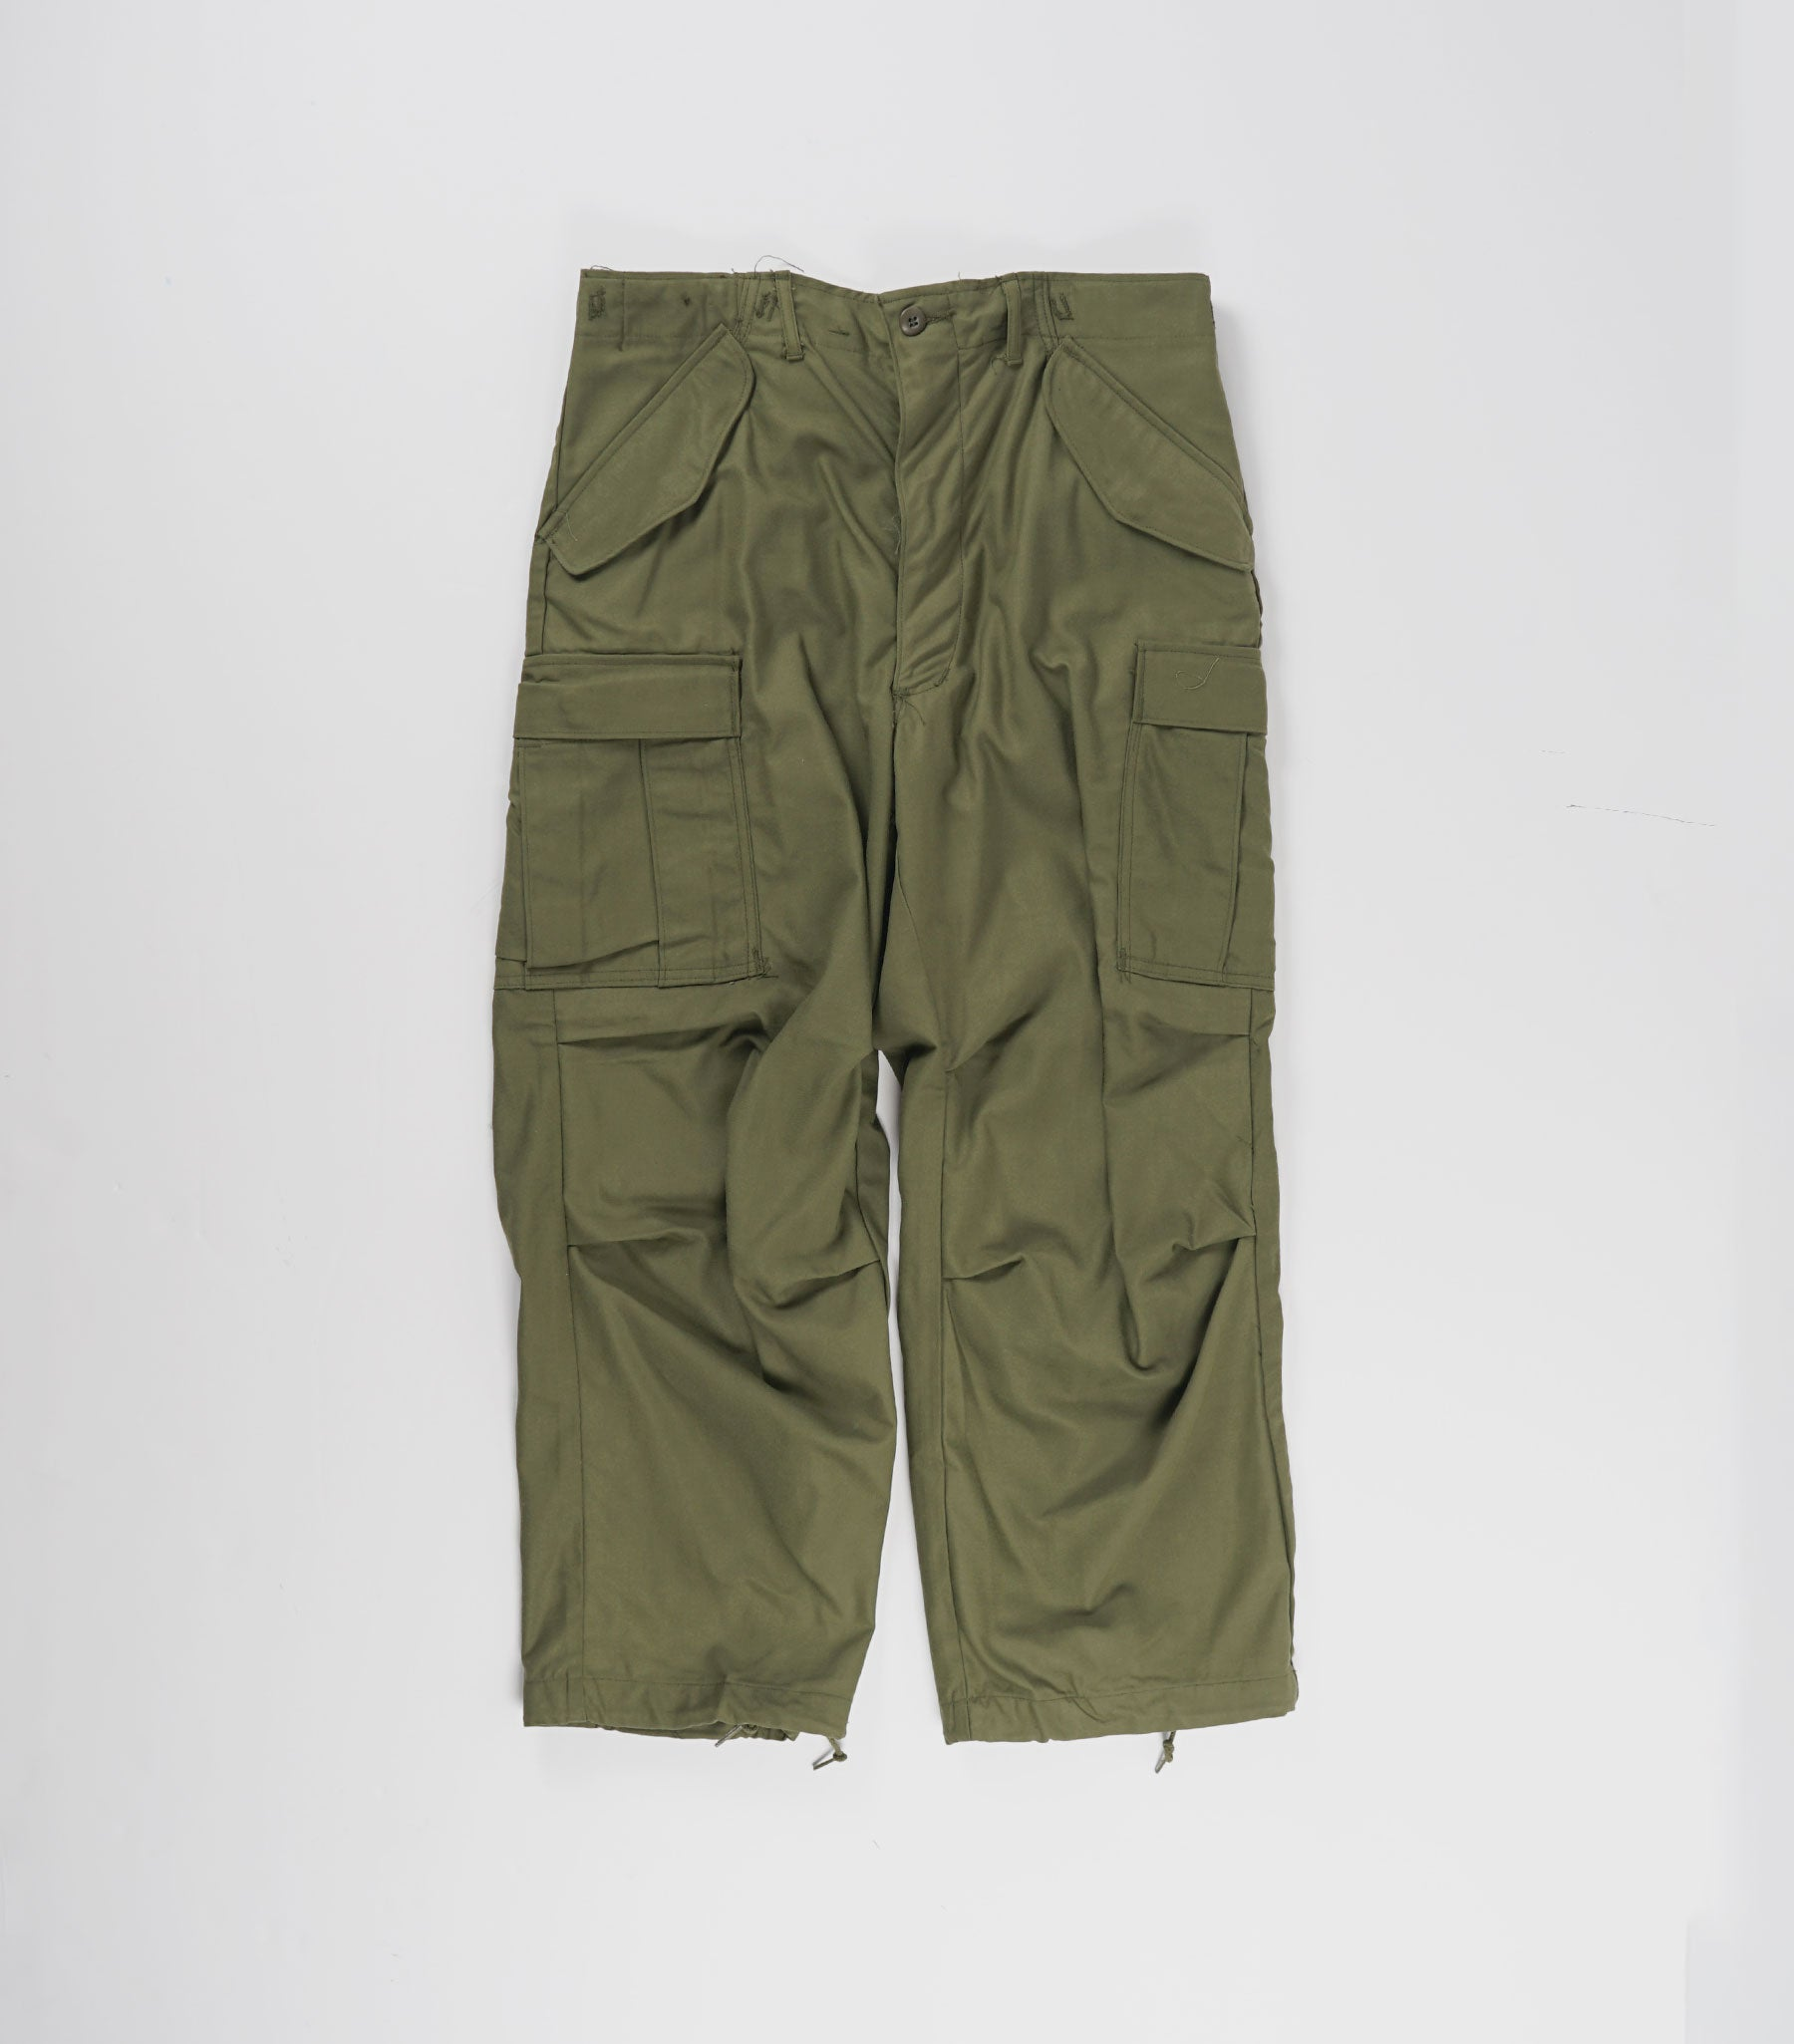 1960's U.S. Army M-65 Field Trousers